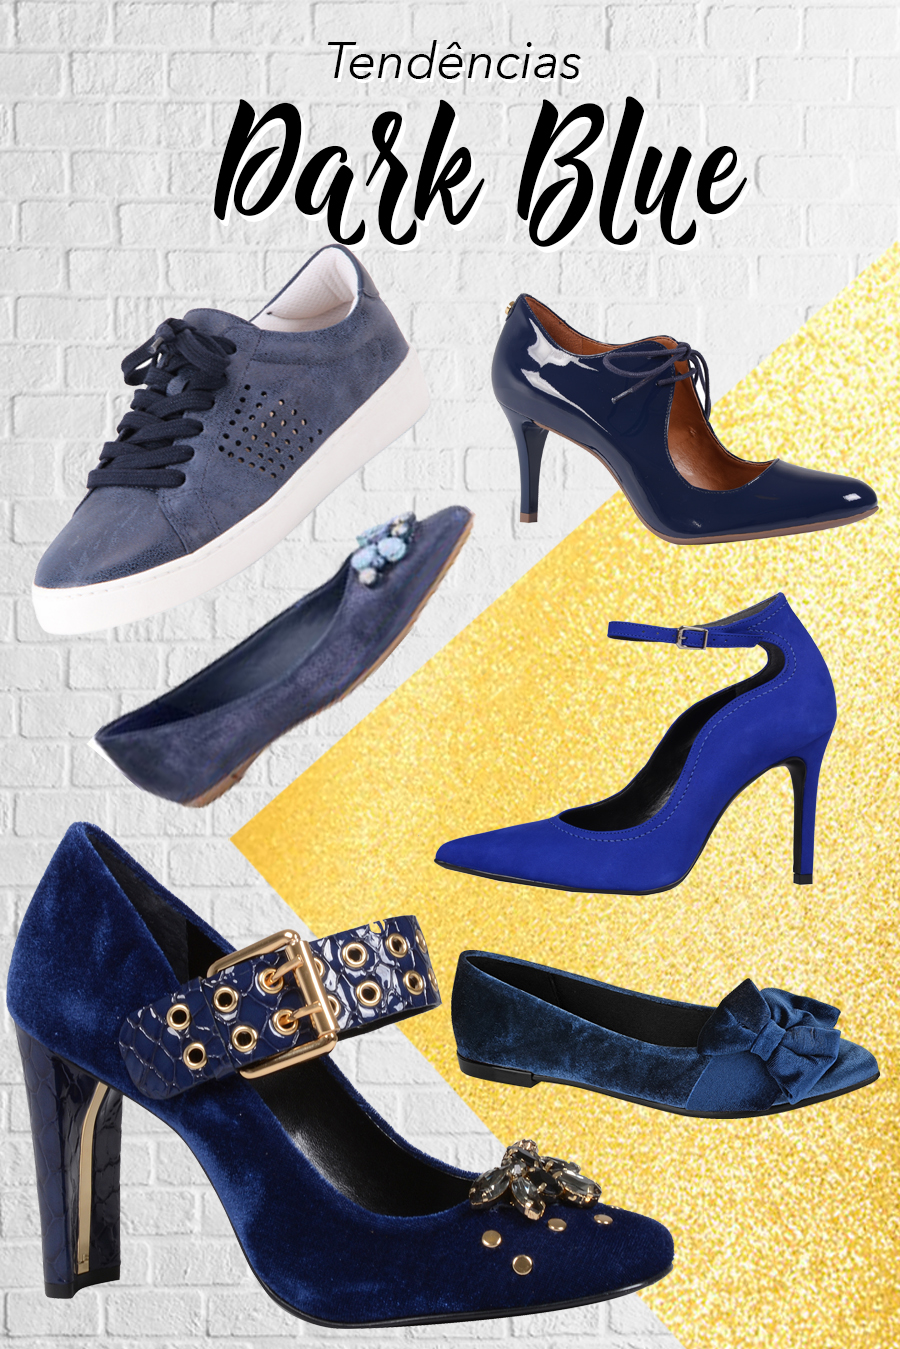 tendencias_sapatos_dark_blue_inverno